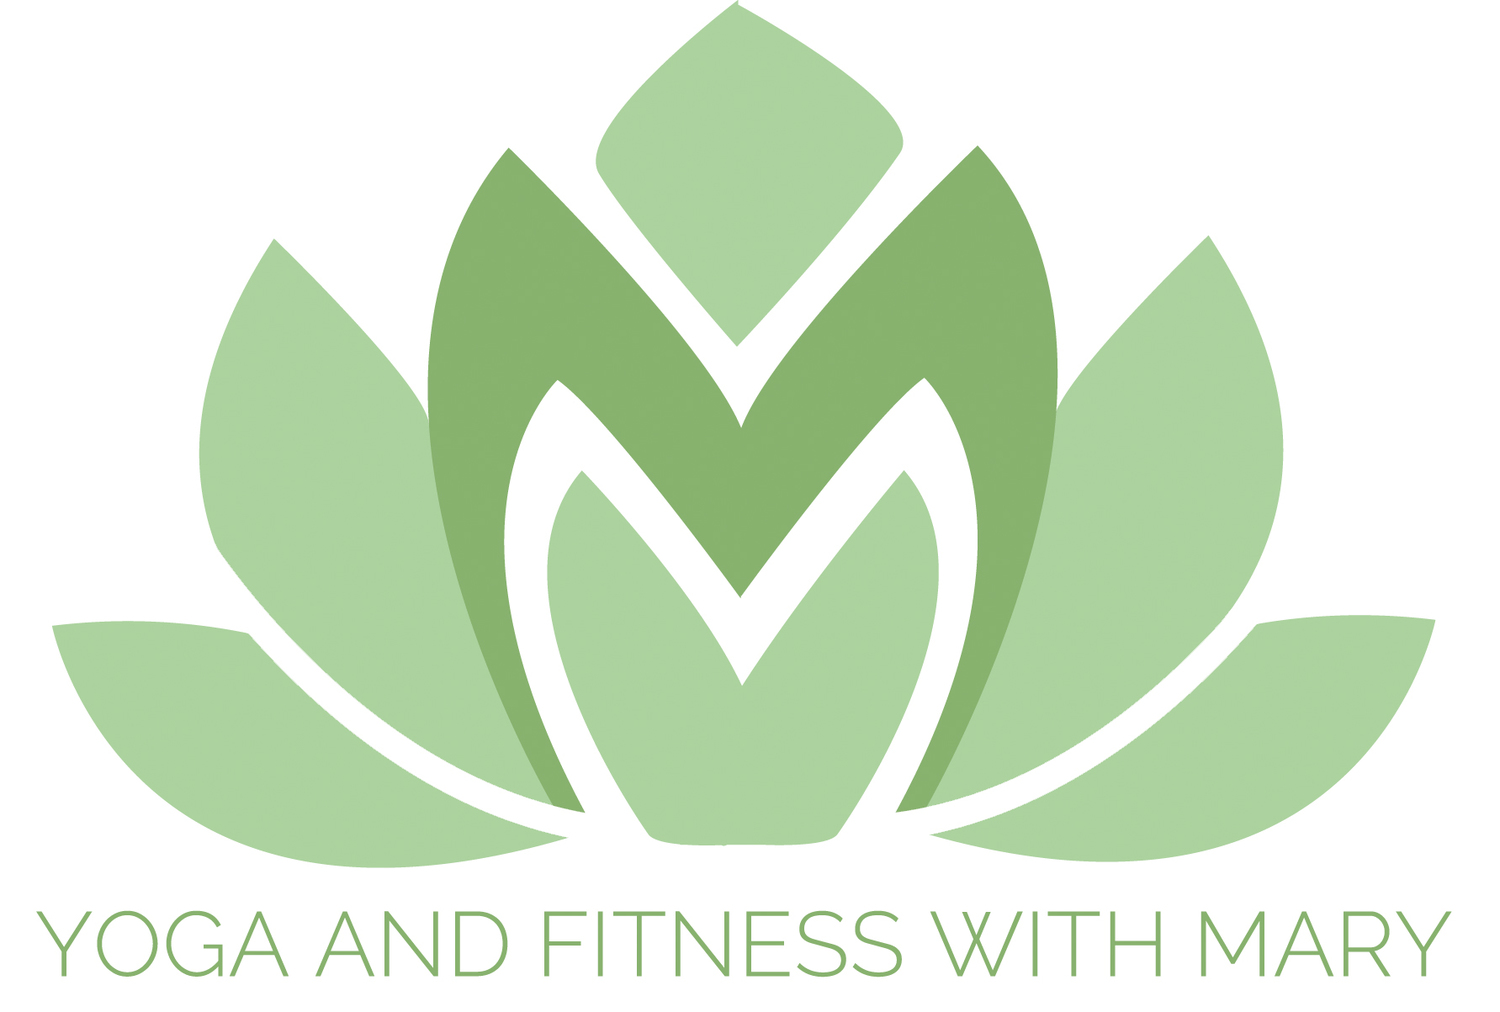 Yoga and Fitness with Mary